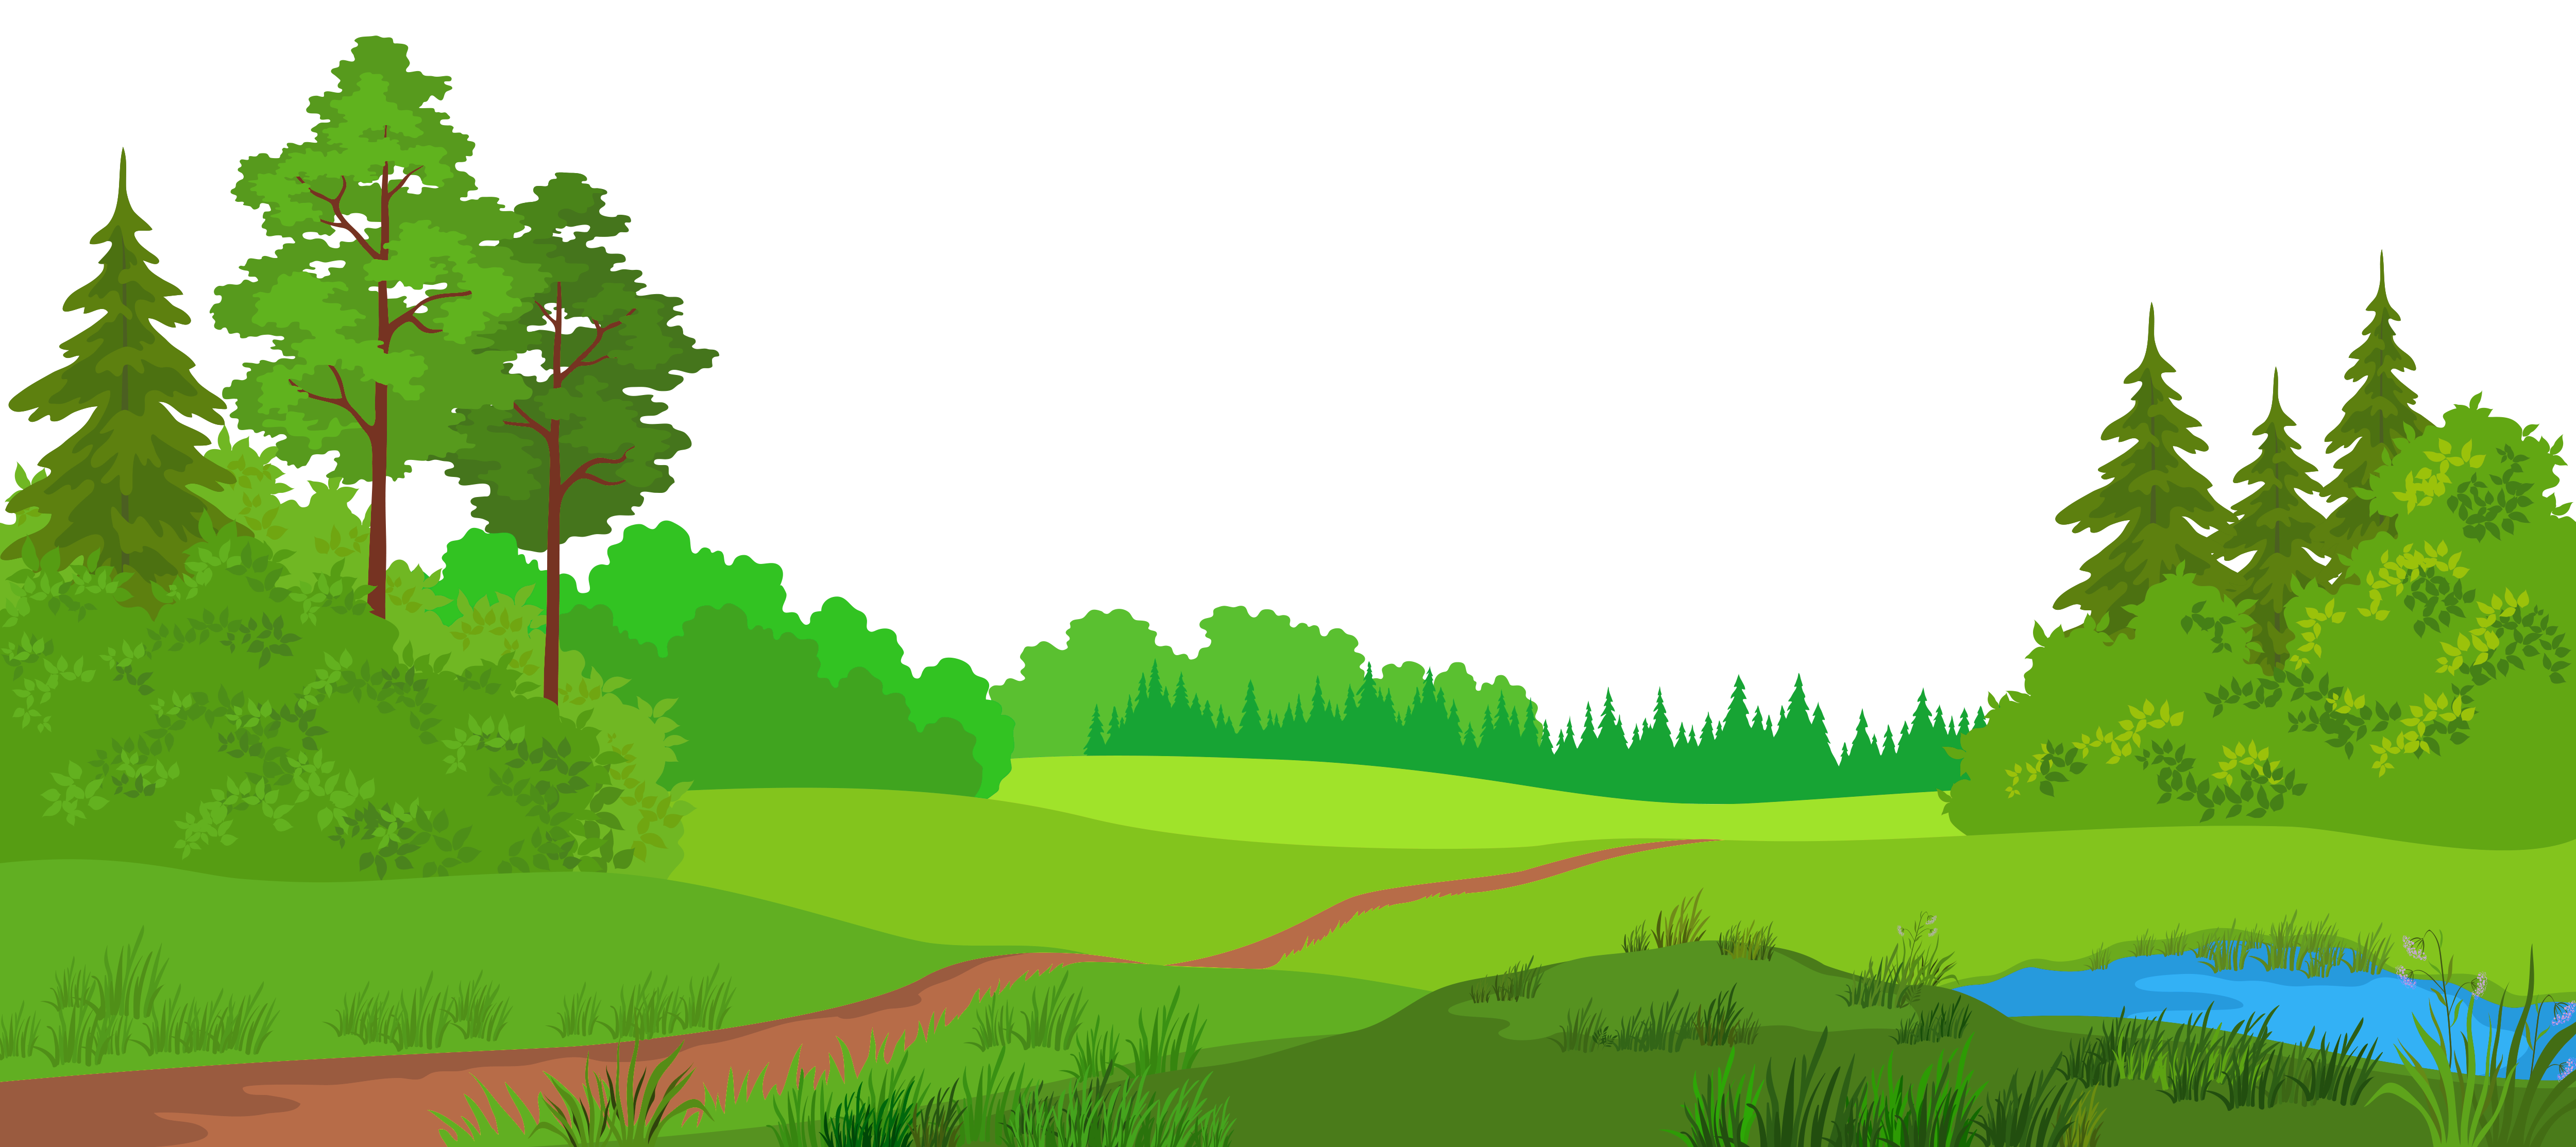 Meadow clip art with. Land clipart grassland biome